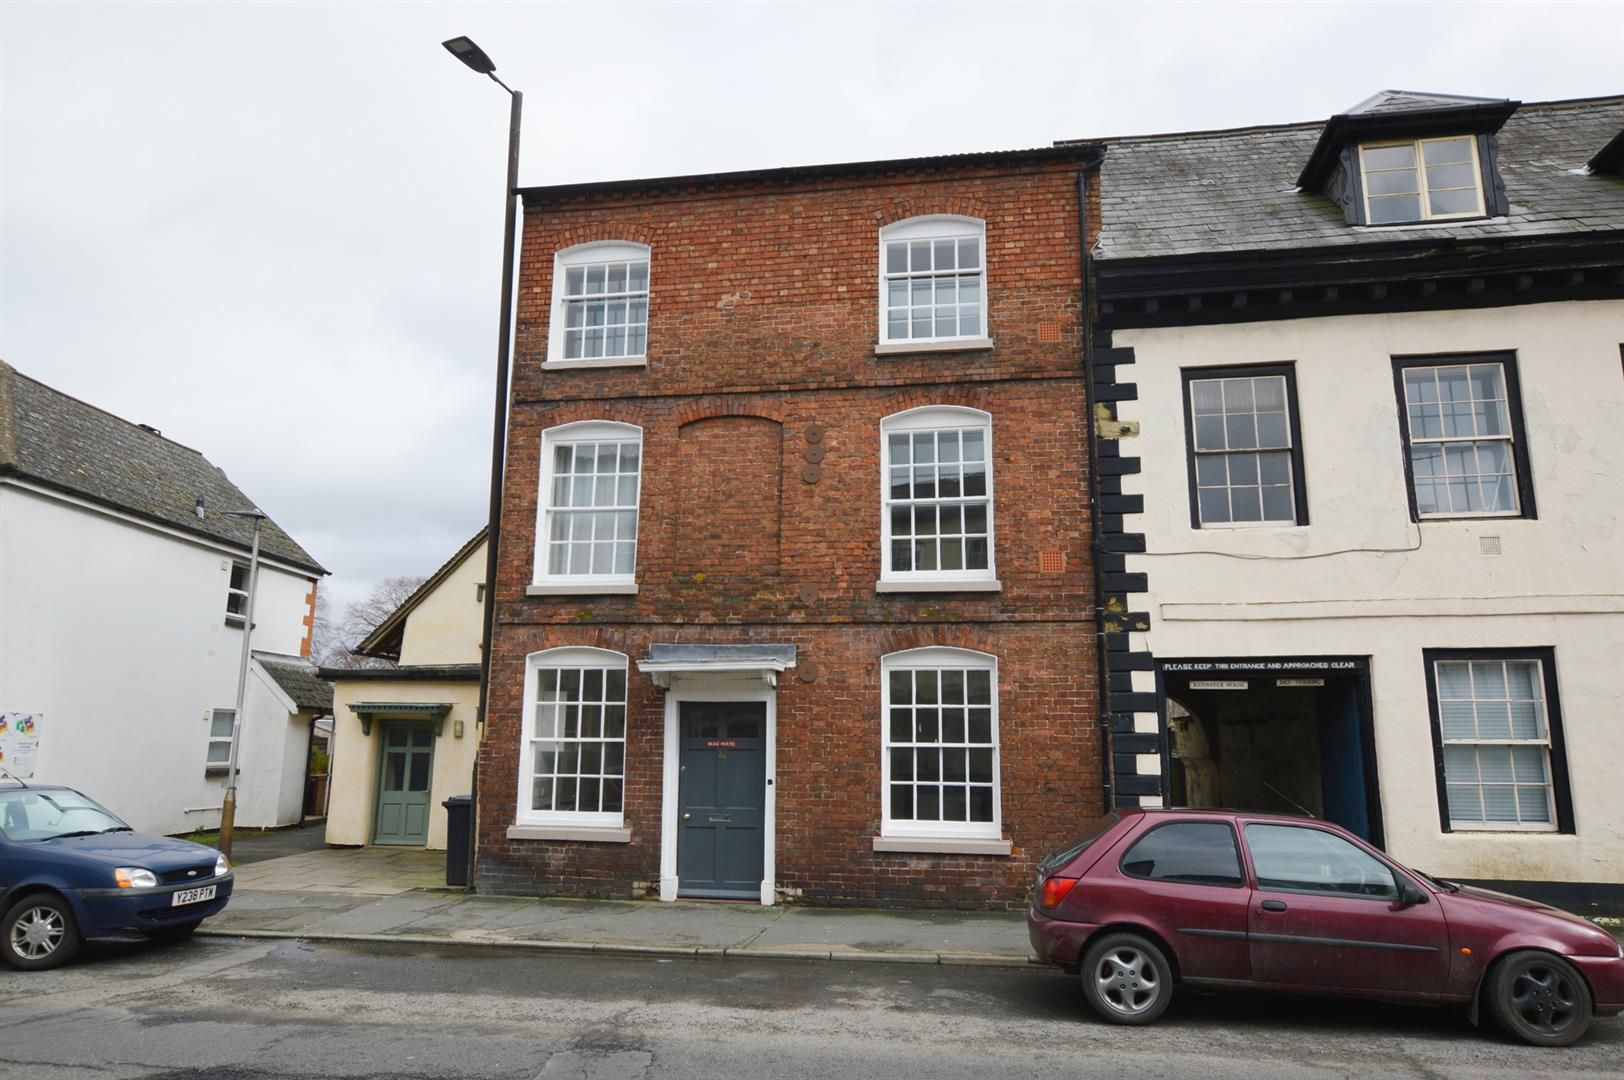 3 bed town-house for sale in Leominster 1